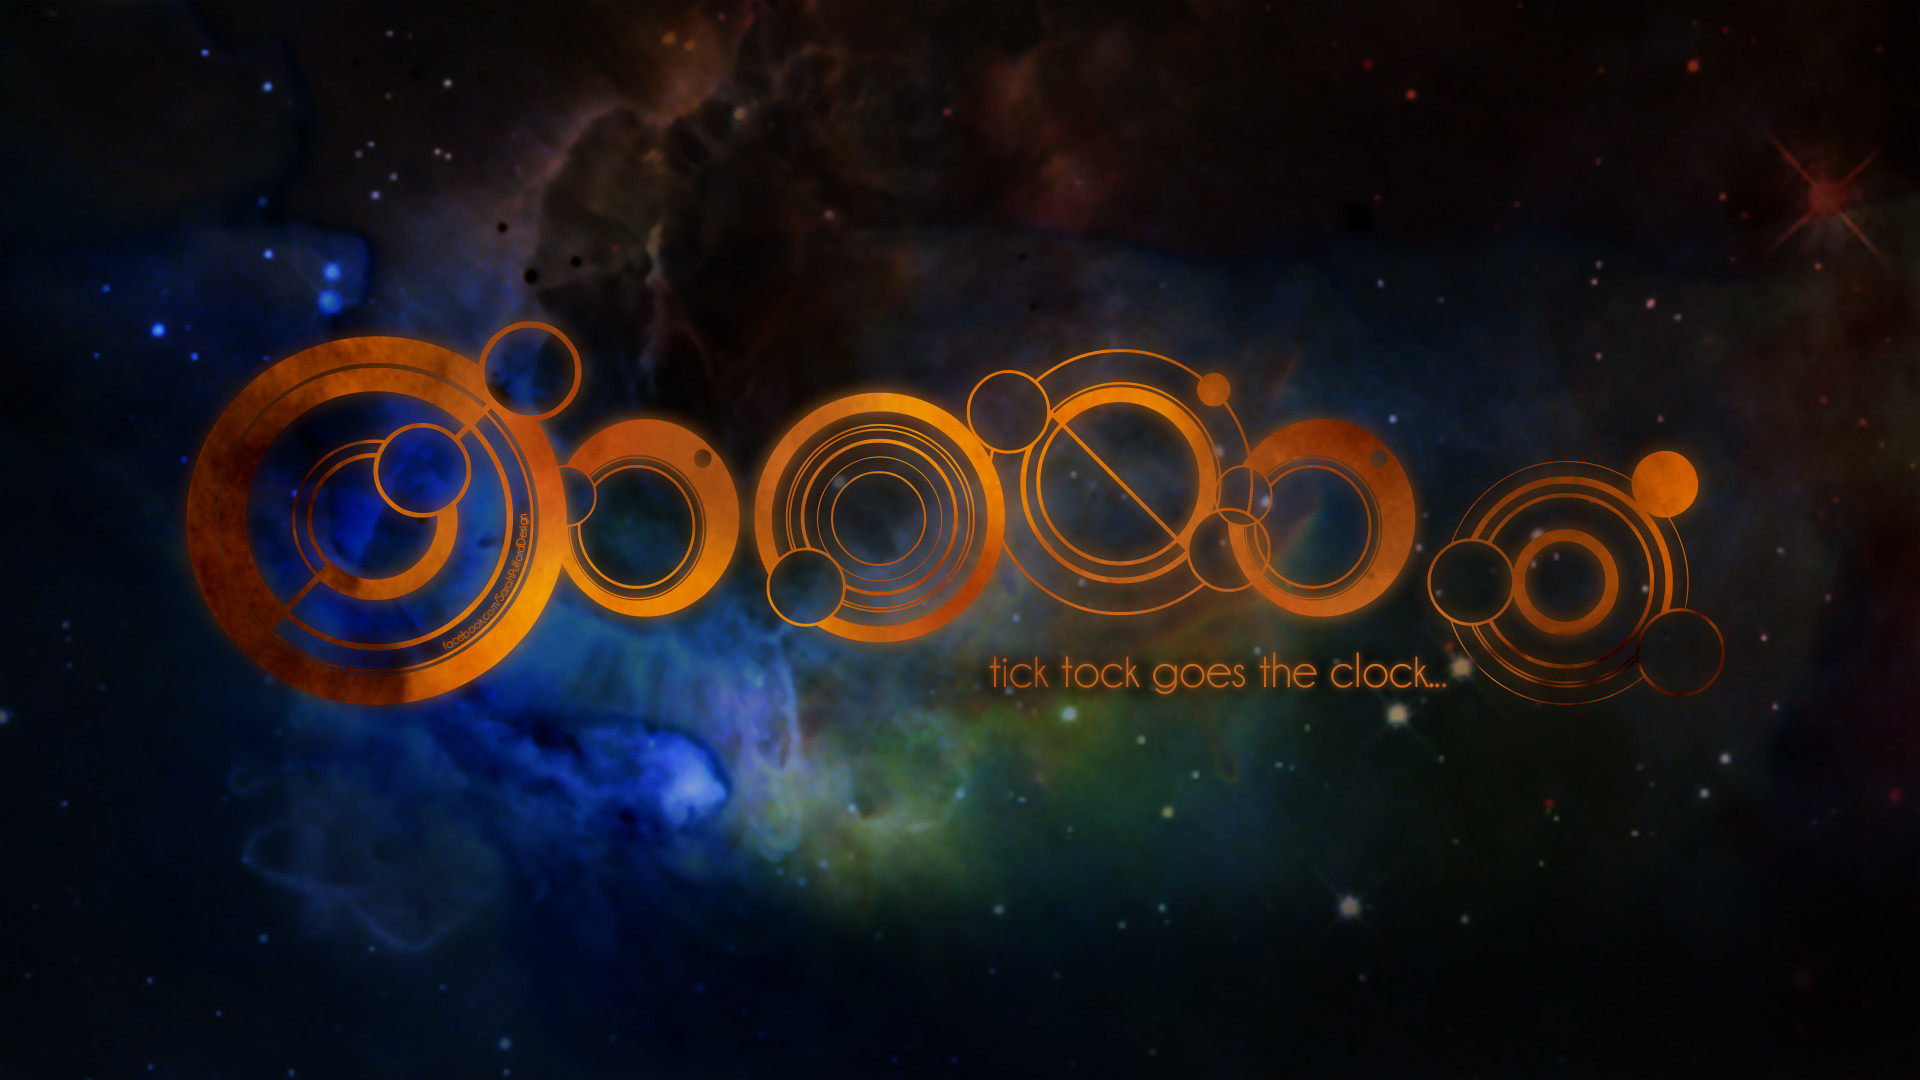 Doctor who hd wallpapers for desktop download - Dr who wallpaper ...